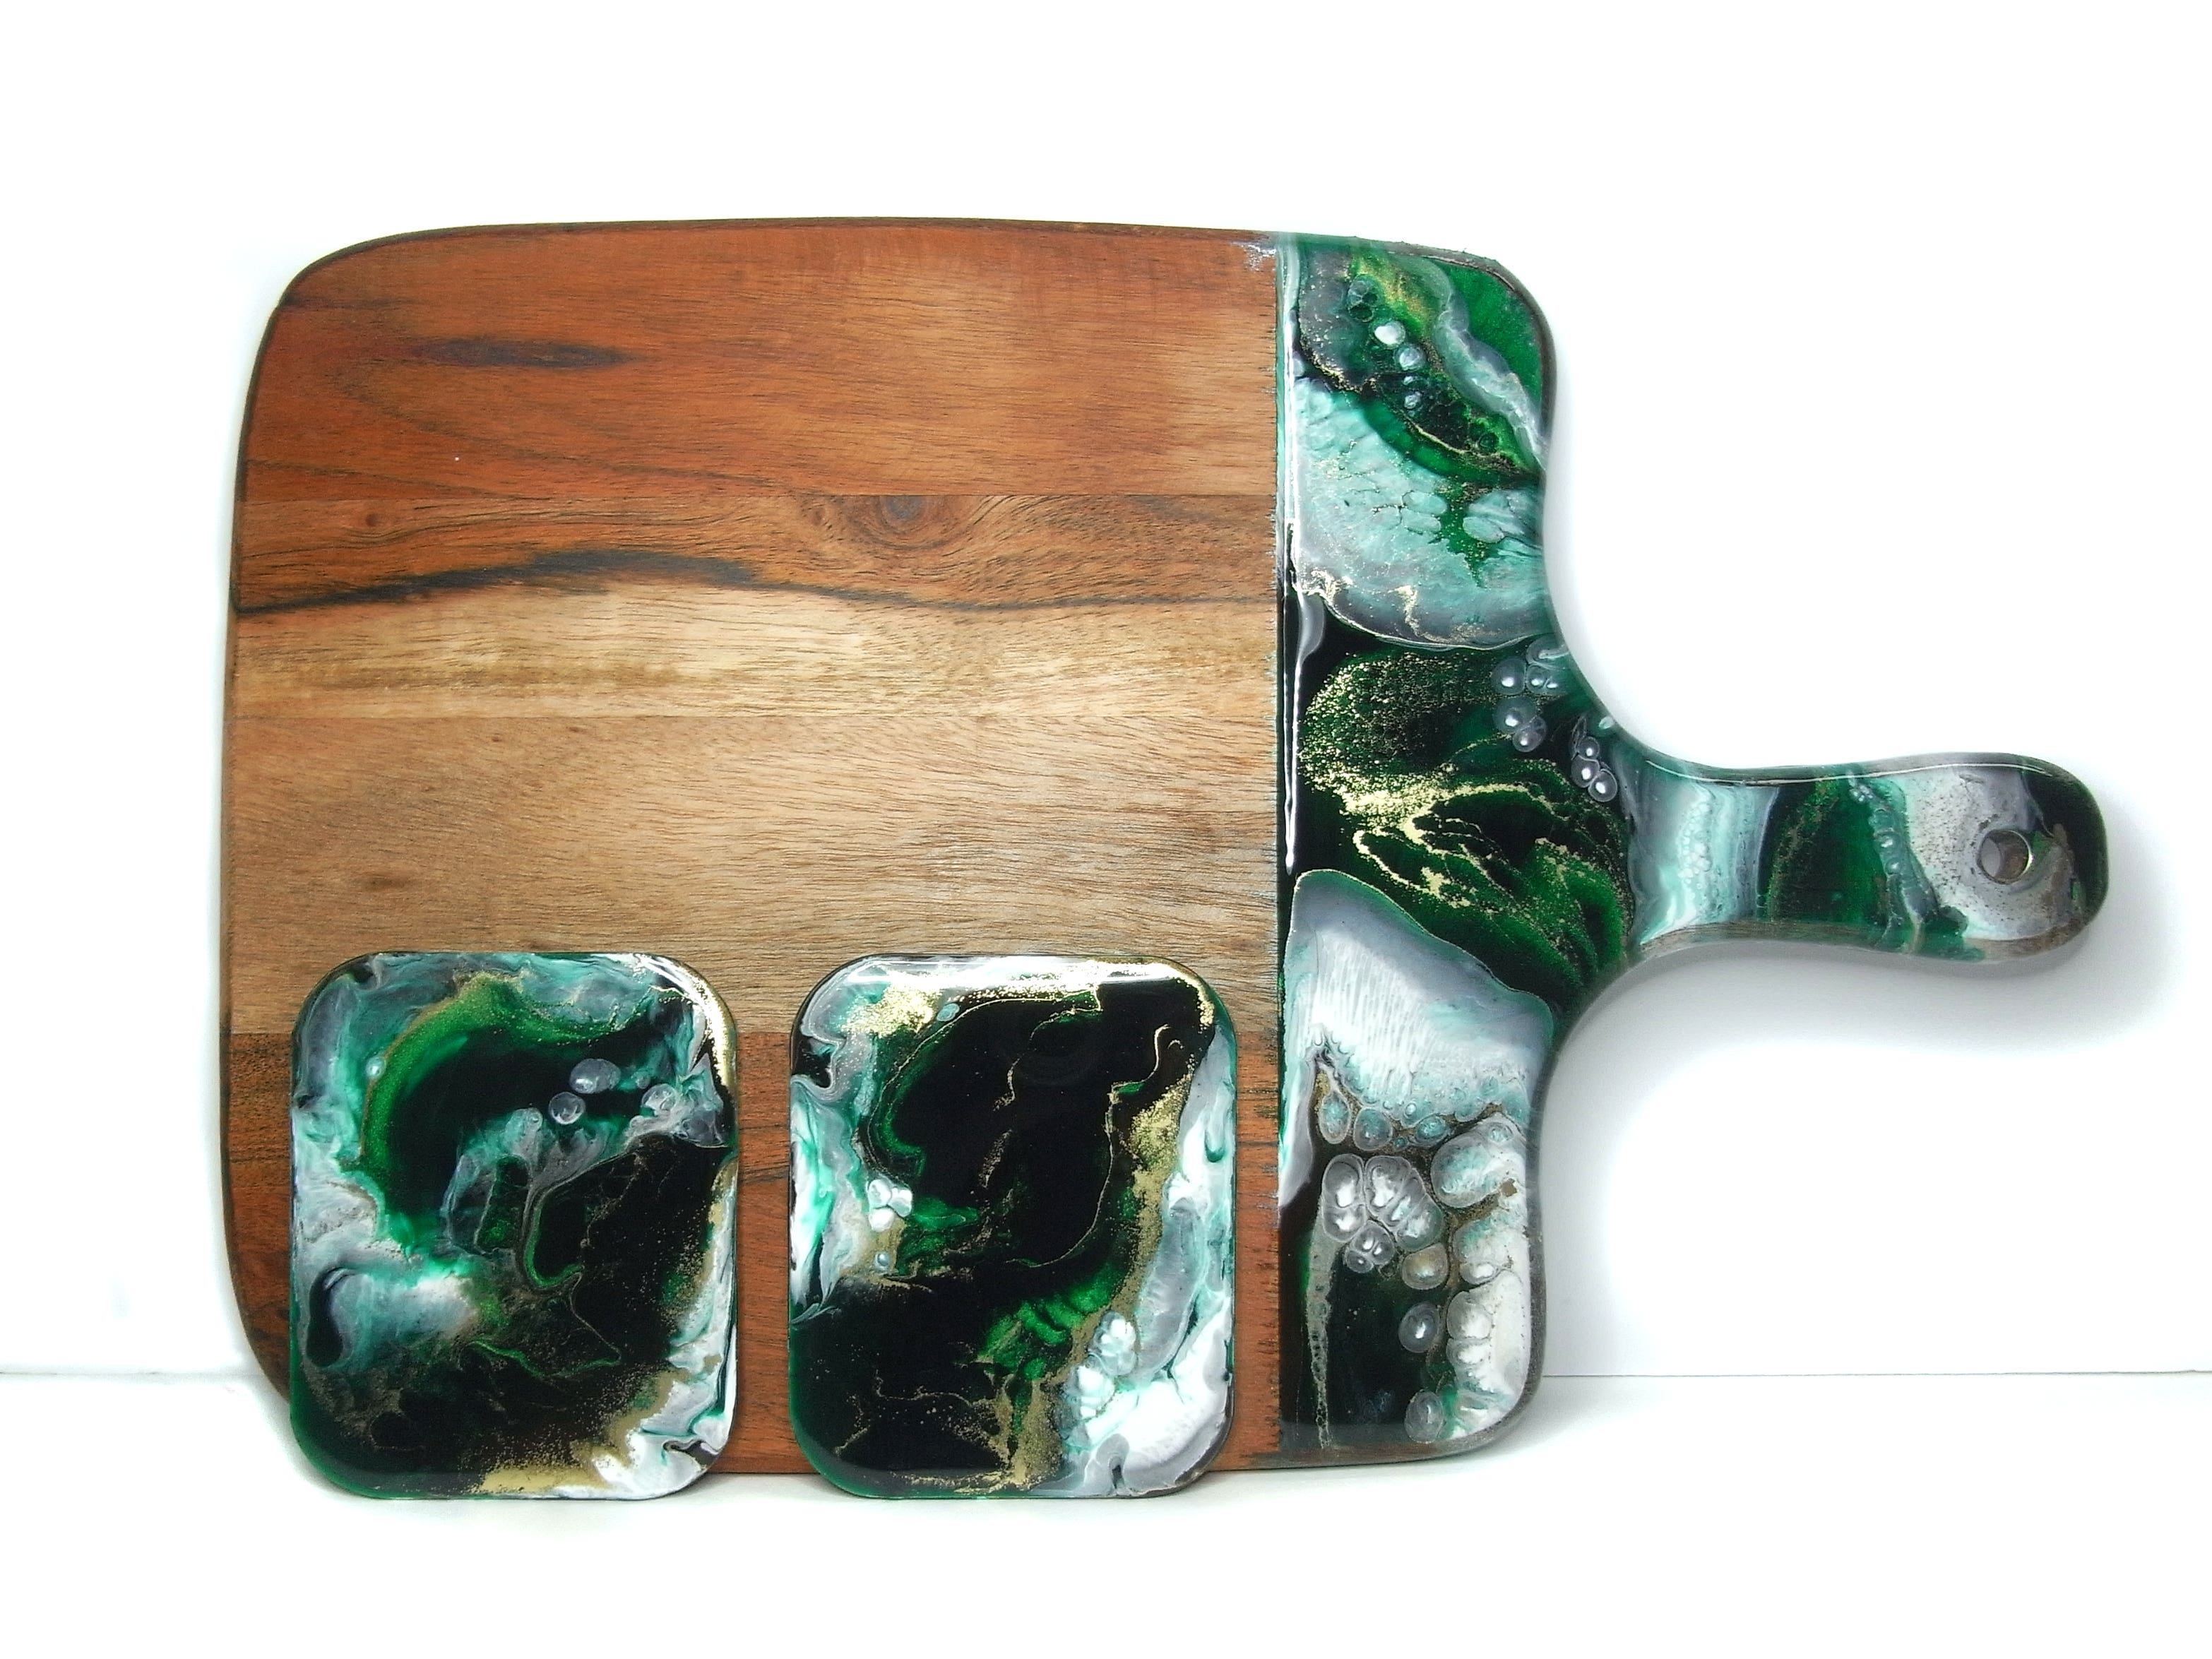 Square Wooden Cheese Board with marbled green, gold and white resin handle and a pair of rectangular, matching resin coasters